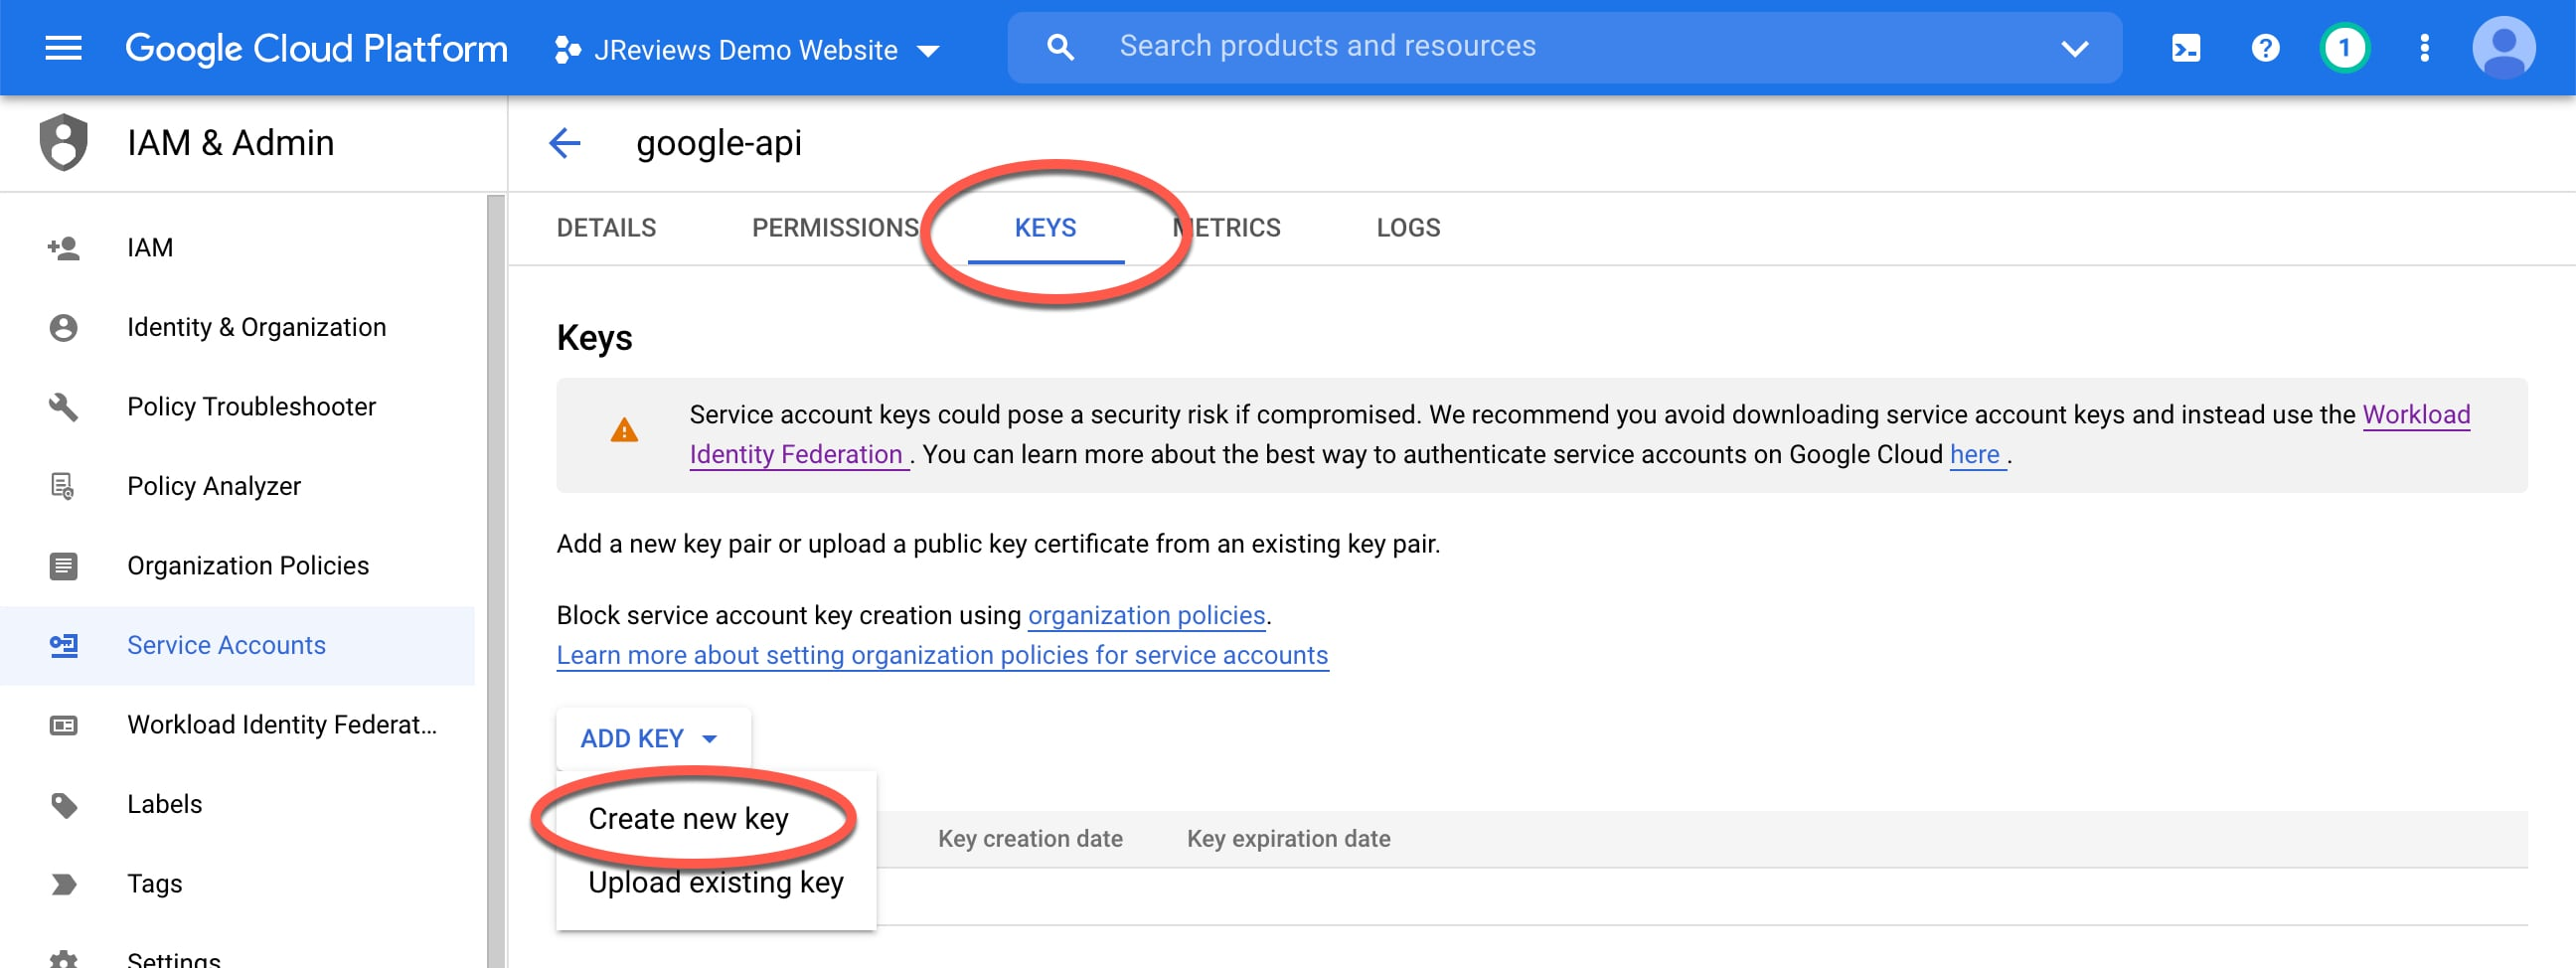 Create a new key for the Service Account